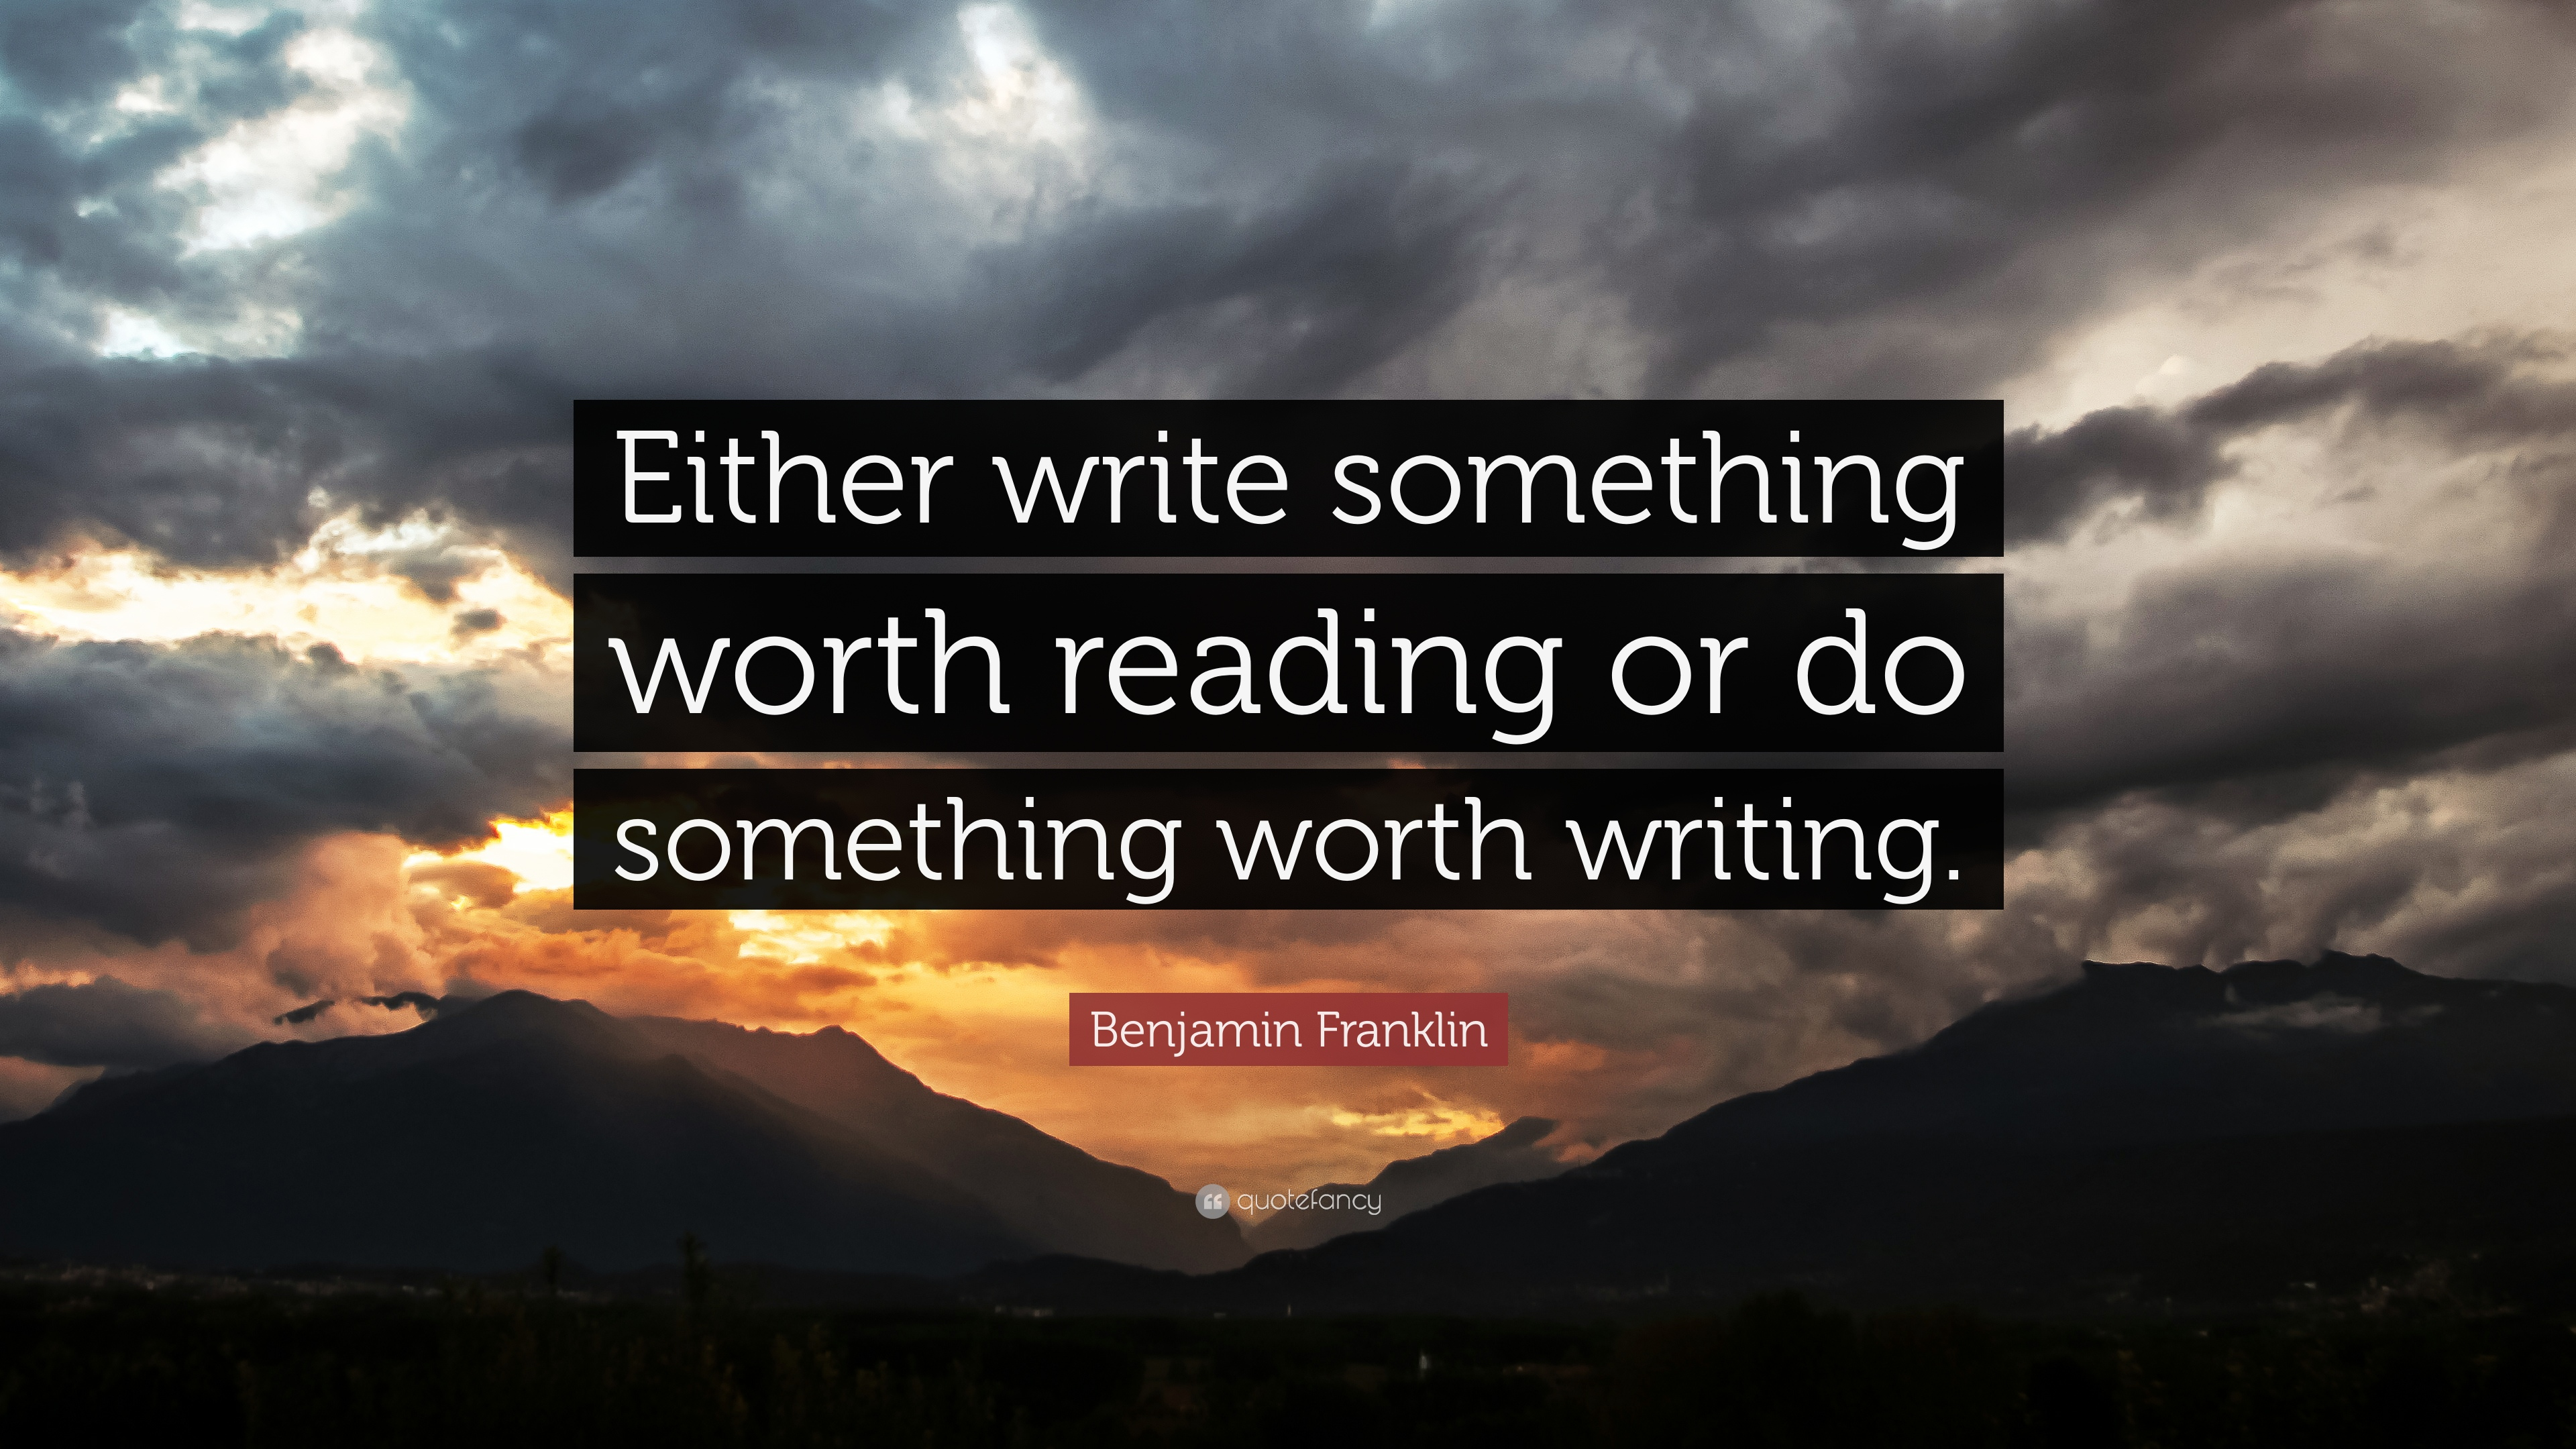 Either write something worth reading or live a life worth writing about